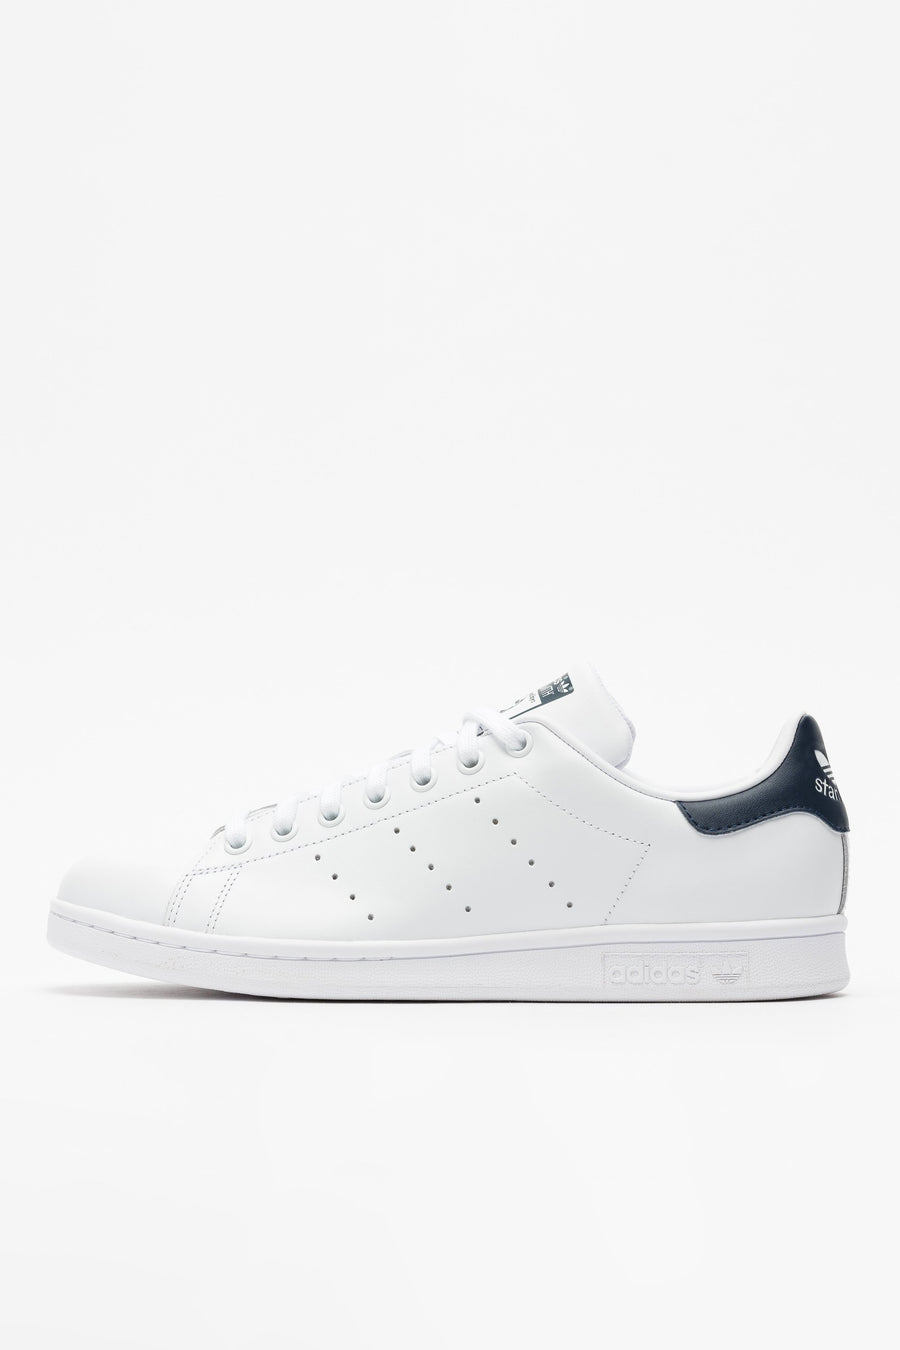 best service caa8d 6092a Stan Smith in Core White/Navy